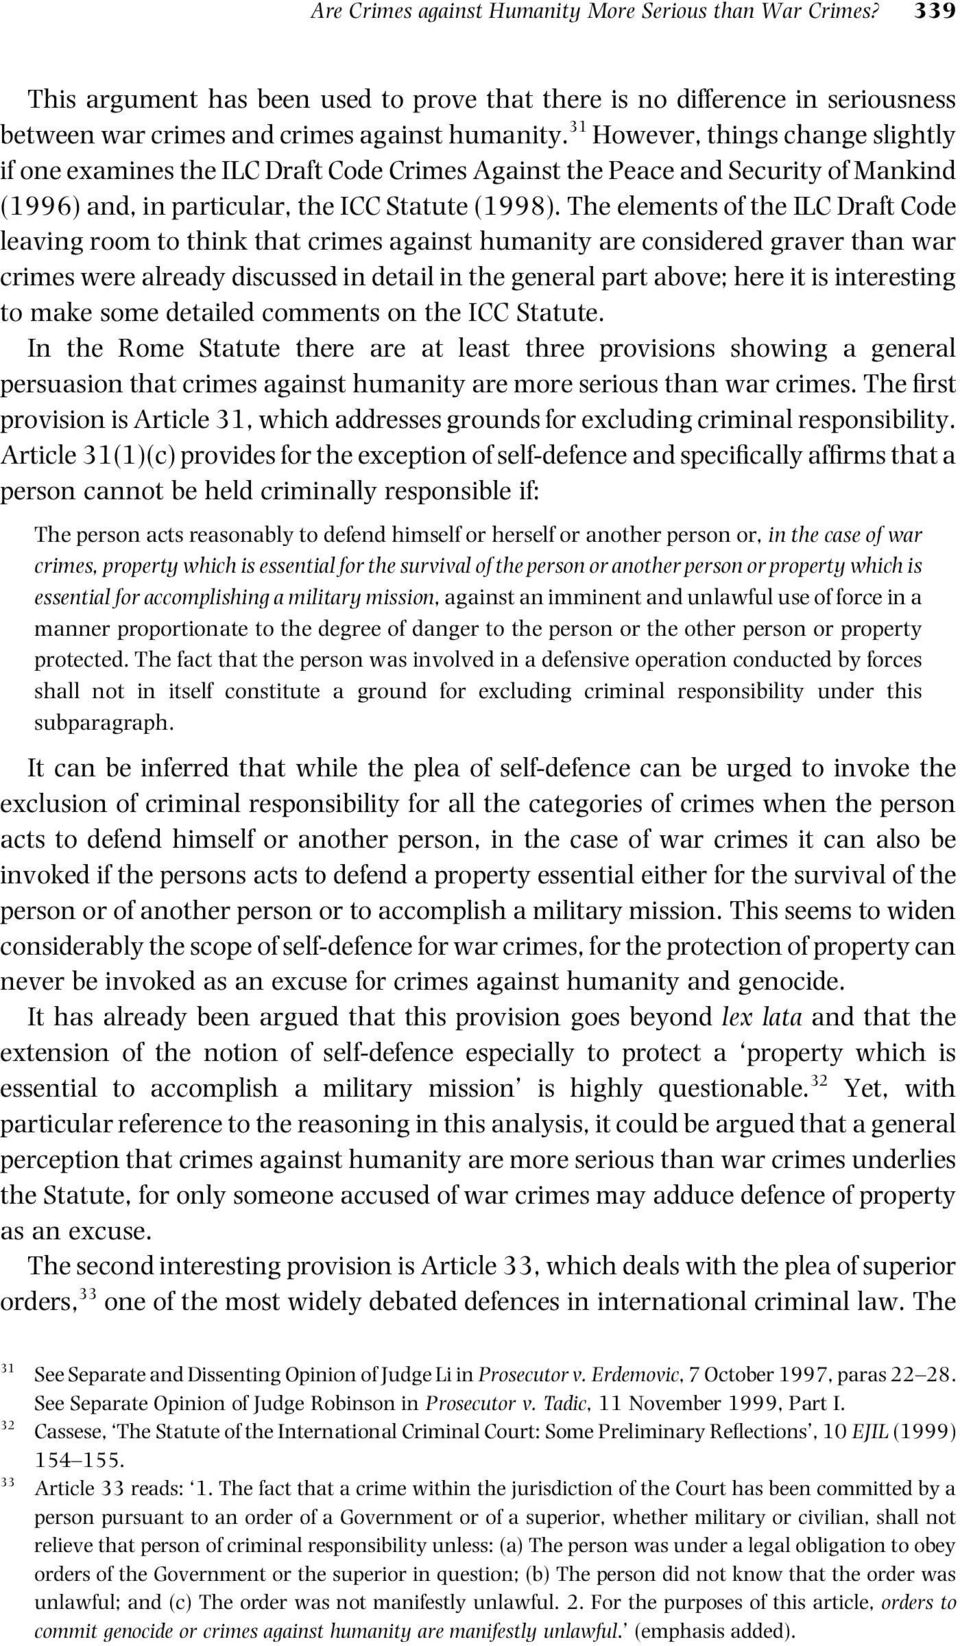 The elements of the ILC Draft Code leaving room to think that crimes against humanity are considered graver than war crimes were already discussed in detail in the general part above; here it is